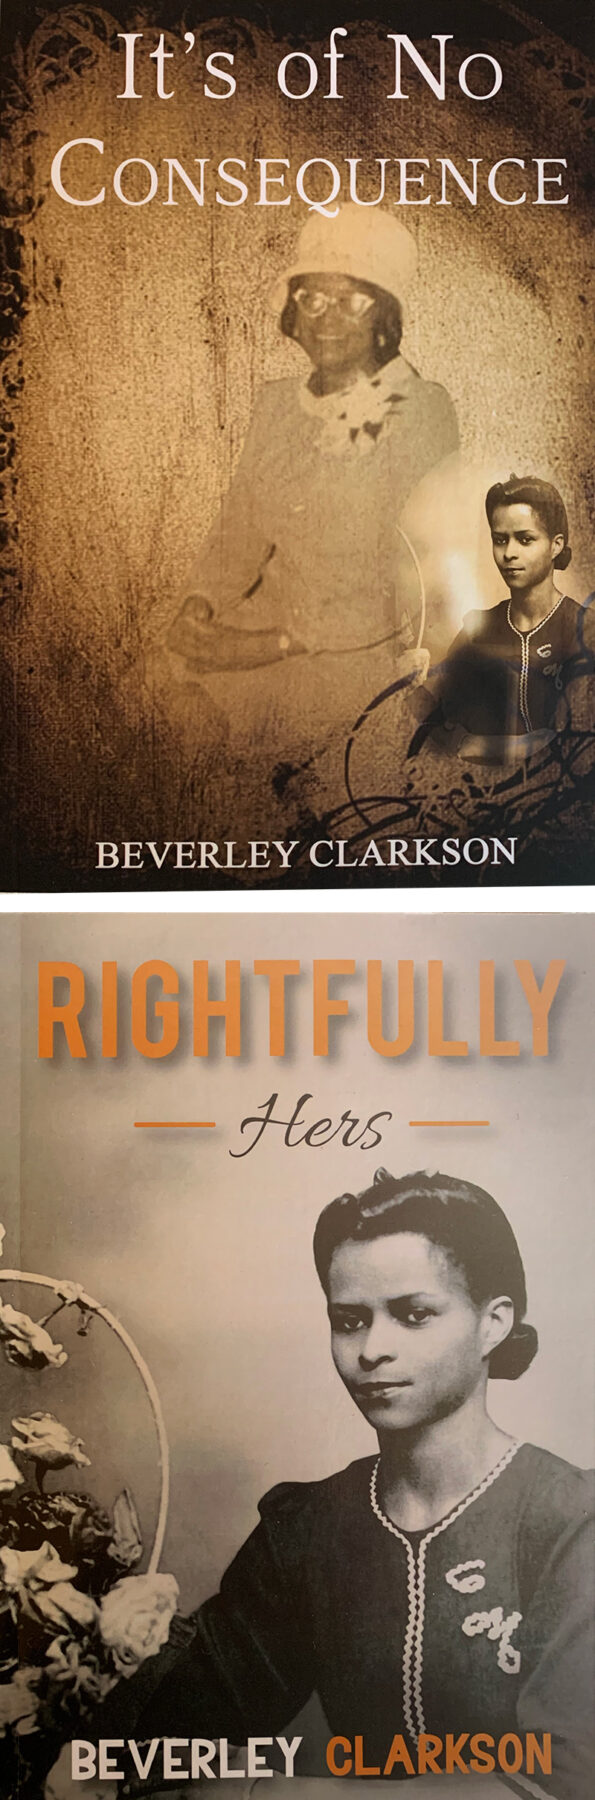 "books covers of ""It's of No Consequence"" and ""Rightfully Hers"" by Beverley Clarkson"